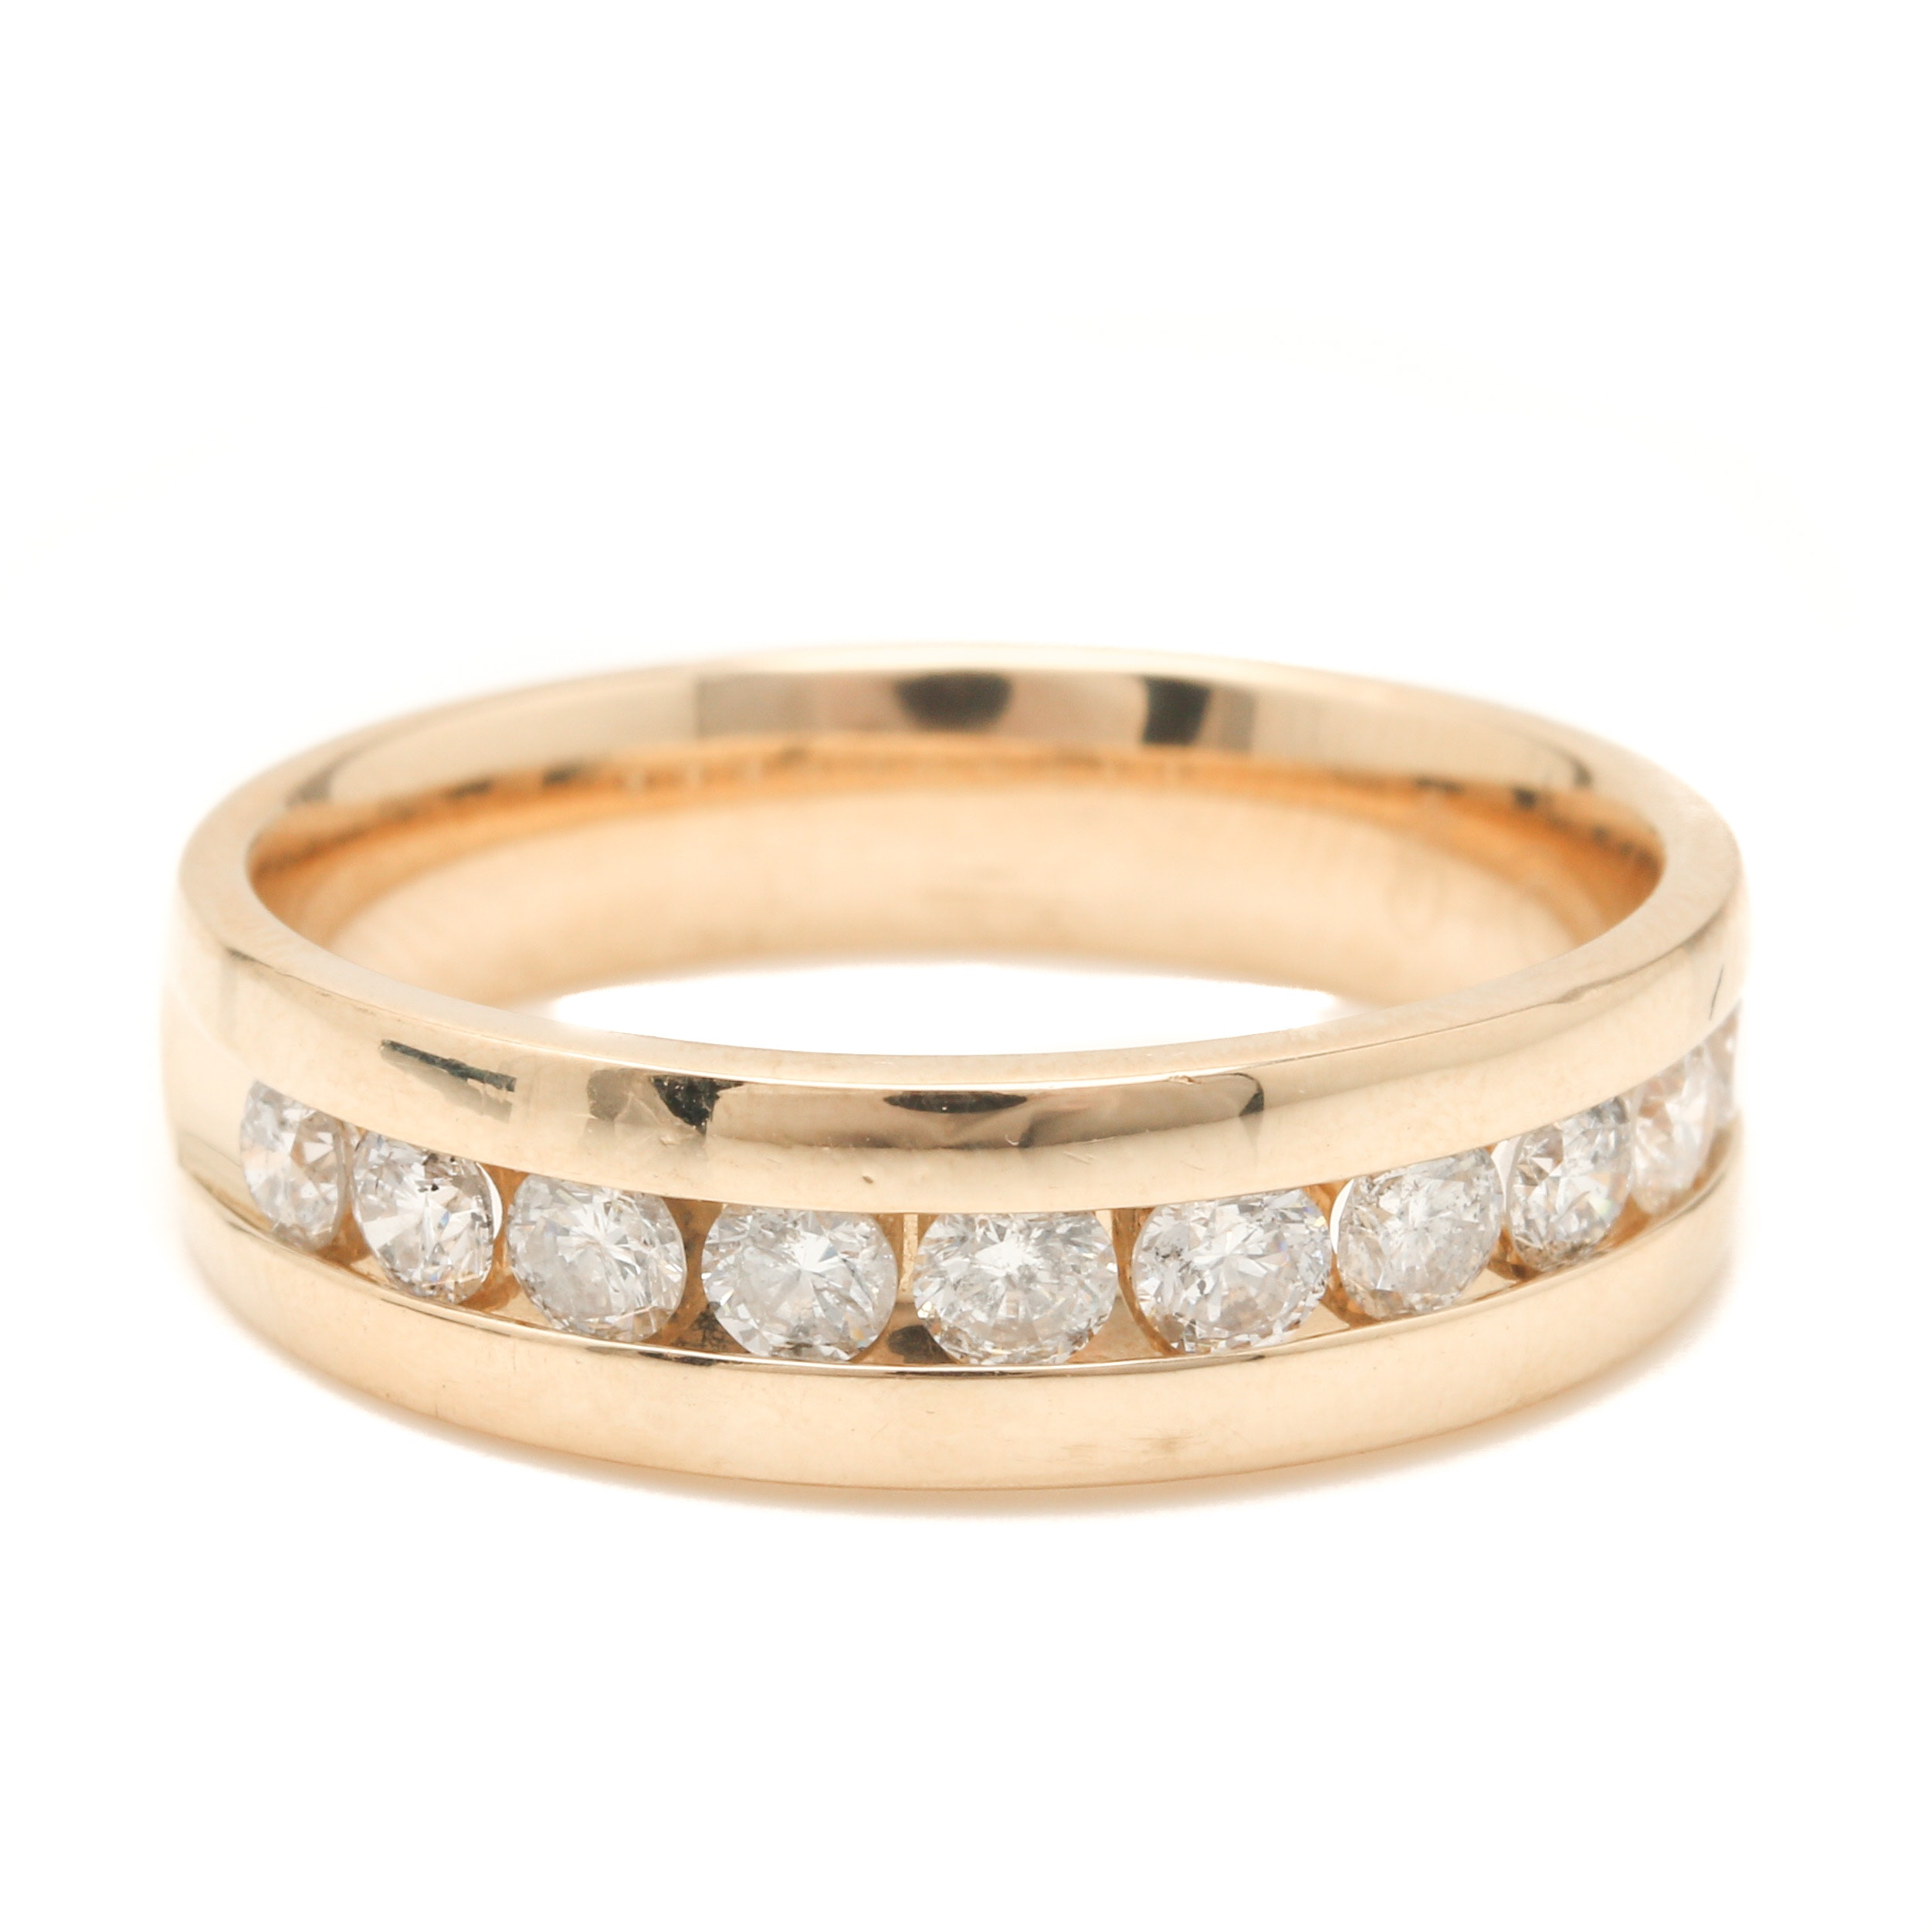 14K Yellow Gold Diamond Ring Band